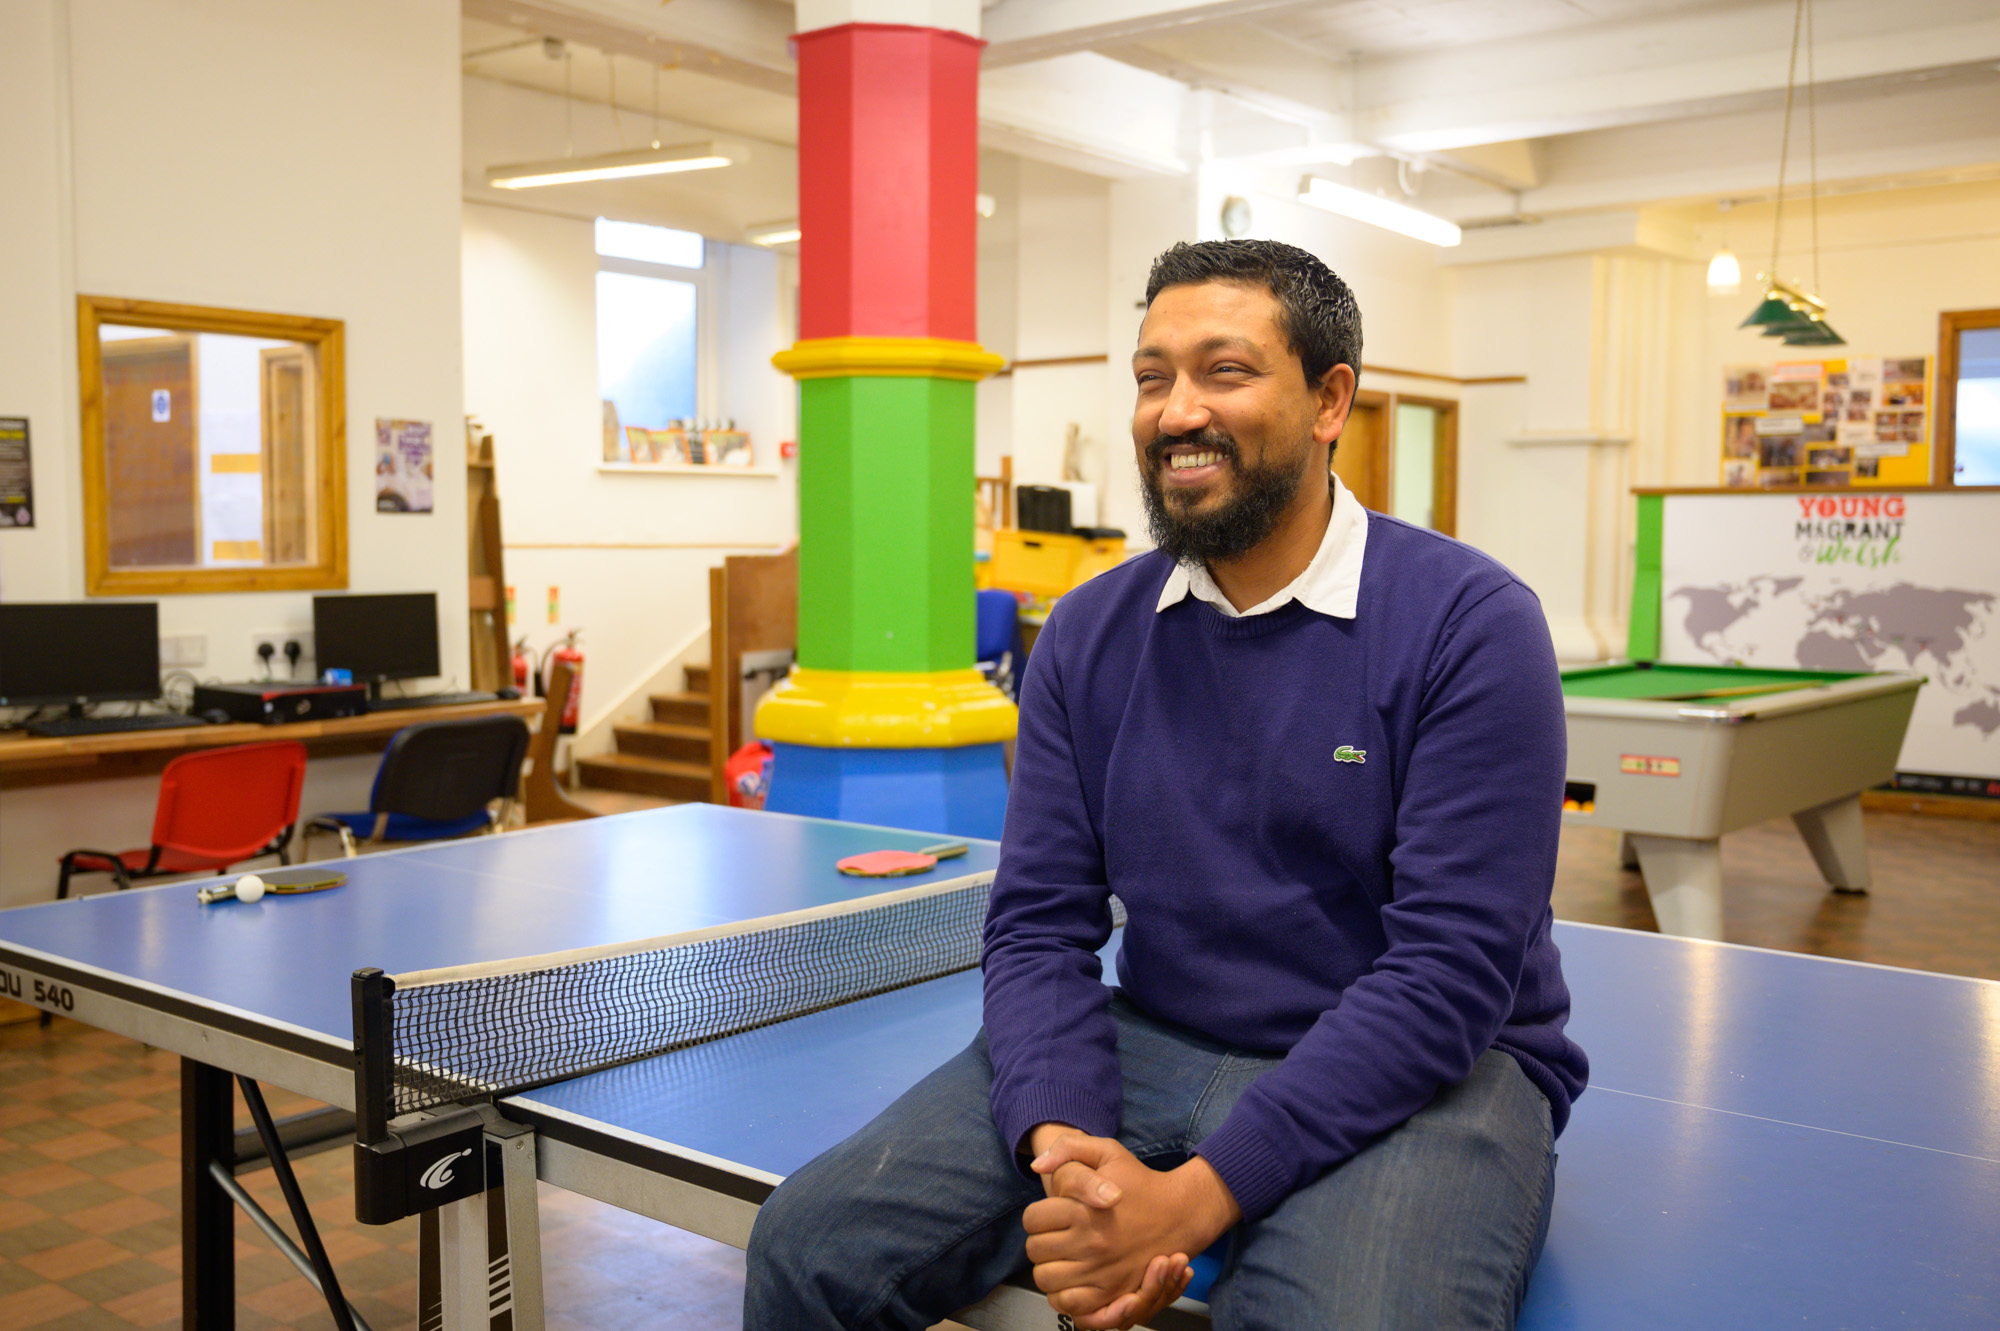 man smiling and sitting on a ping pong table at a youth centre